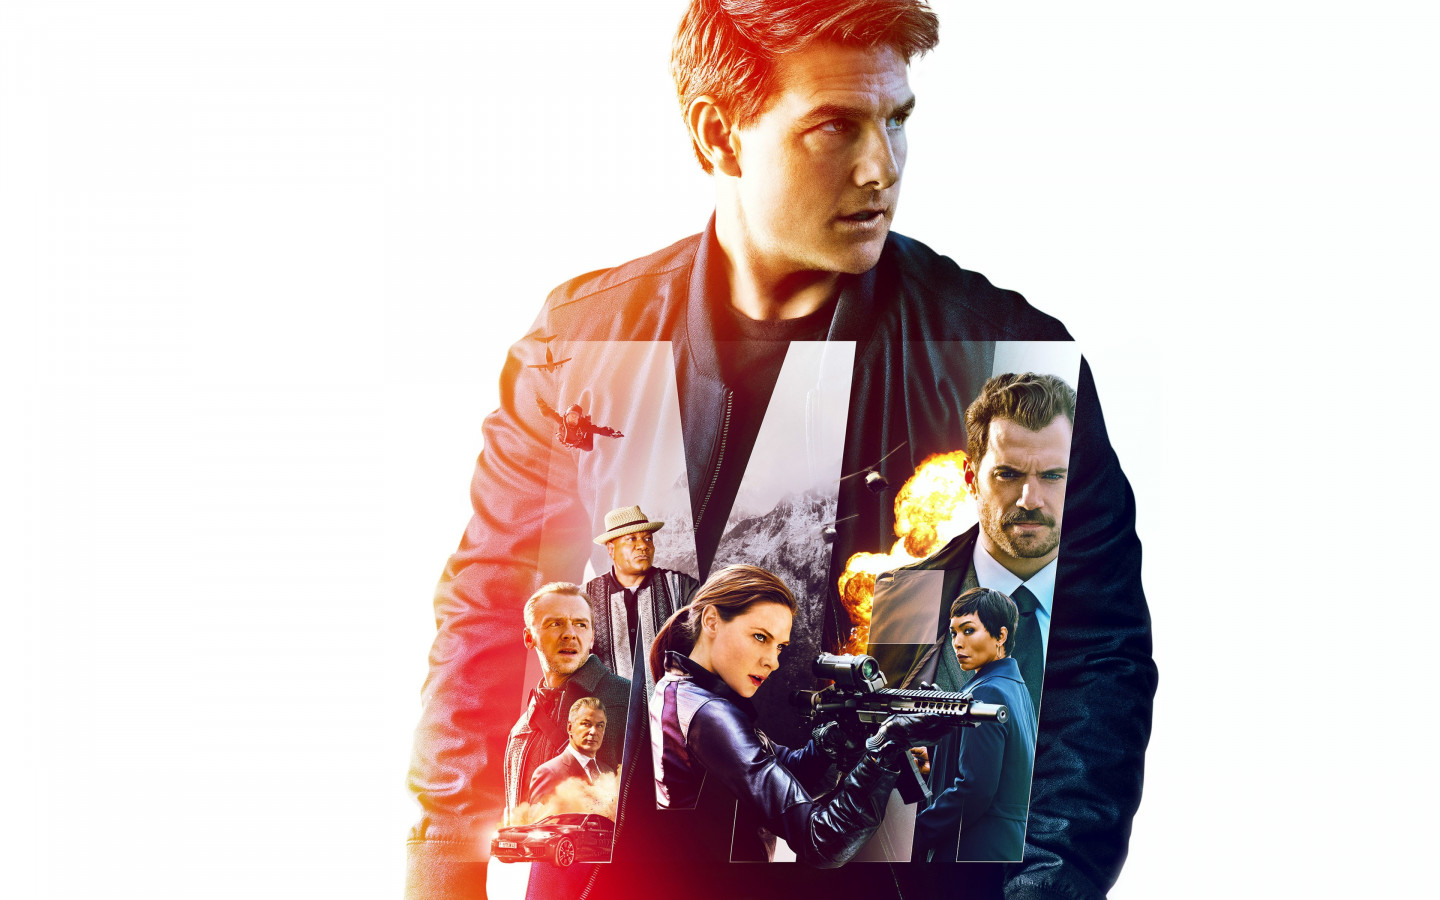 Mission: Impossible Fallout wallpaper 1440x900